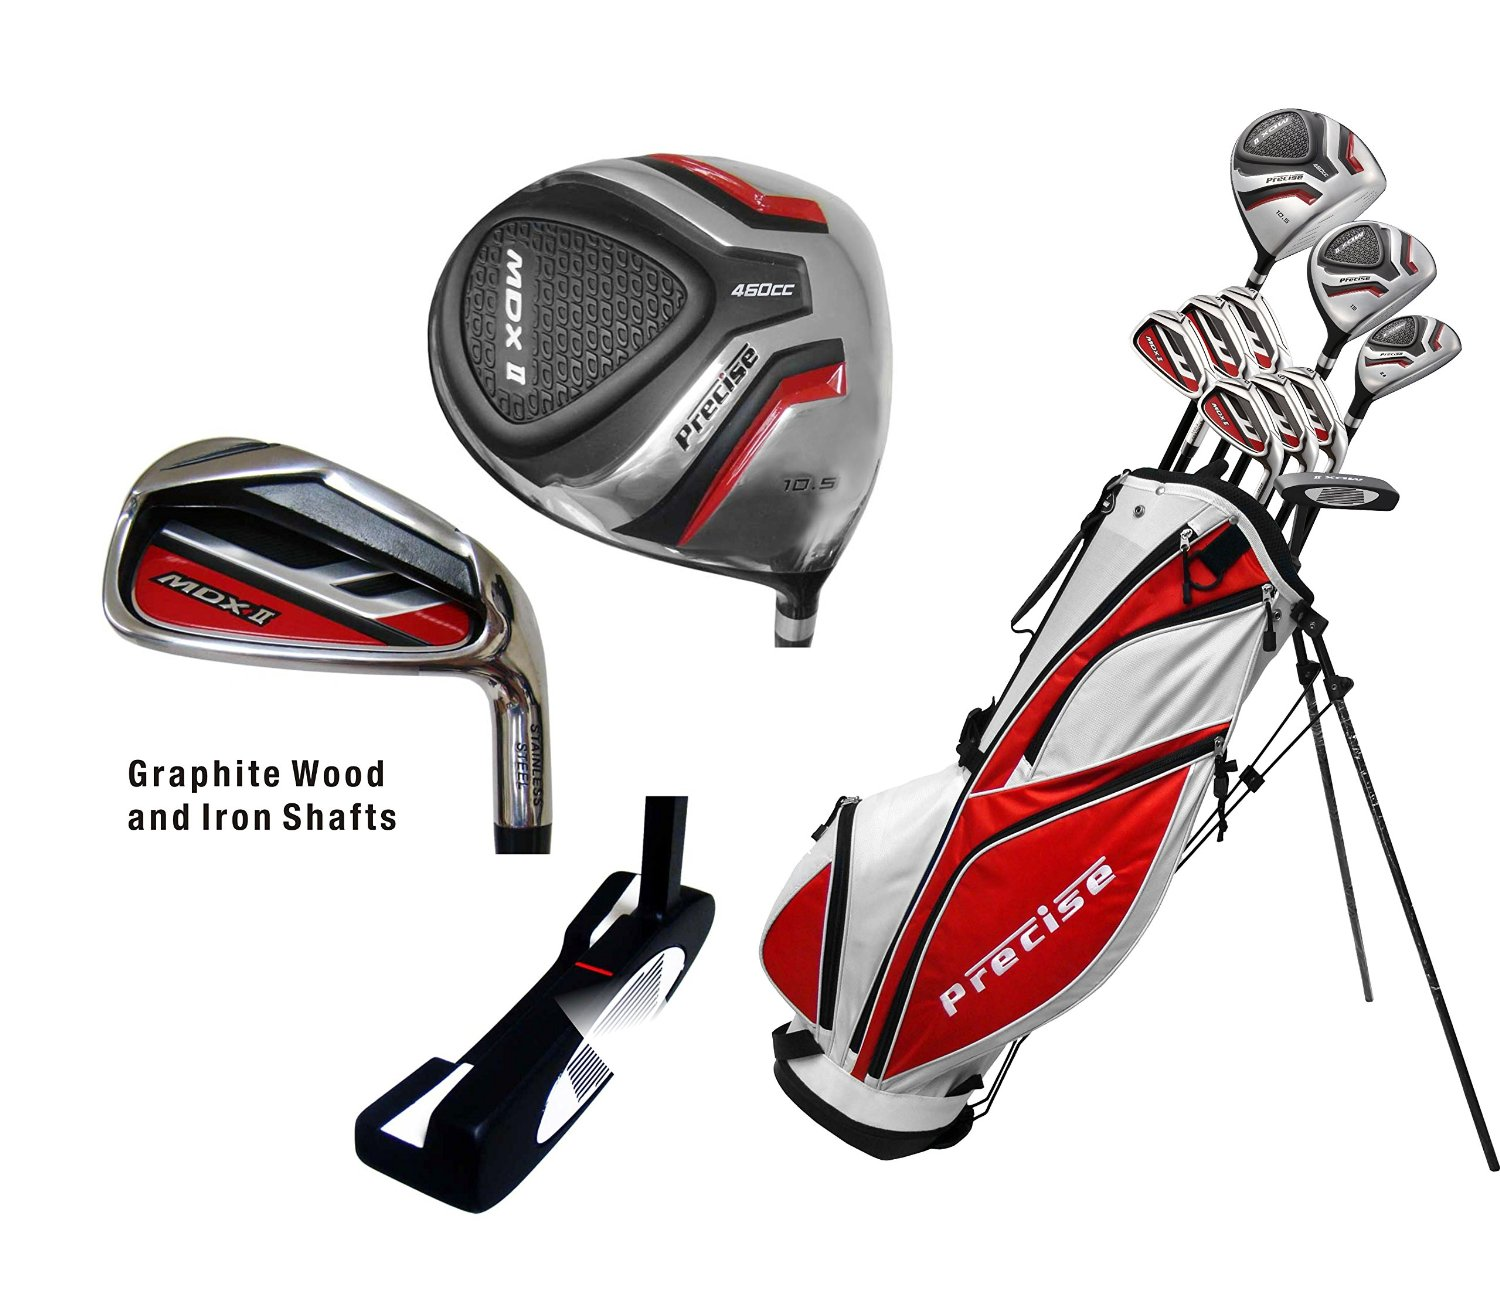 """Men's Tall All Graphite Complete Golf Club Set Right Handed, Driver, 3 Wood, Hybrid, 5 thru PW Stainless Irons, Putter, Stand Bag, Mid-Flex Graphite shafts, Fit 6'0"""" to 6'3"""" Tall Size Men"""